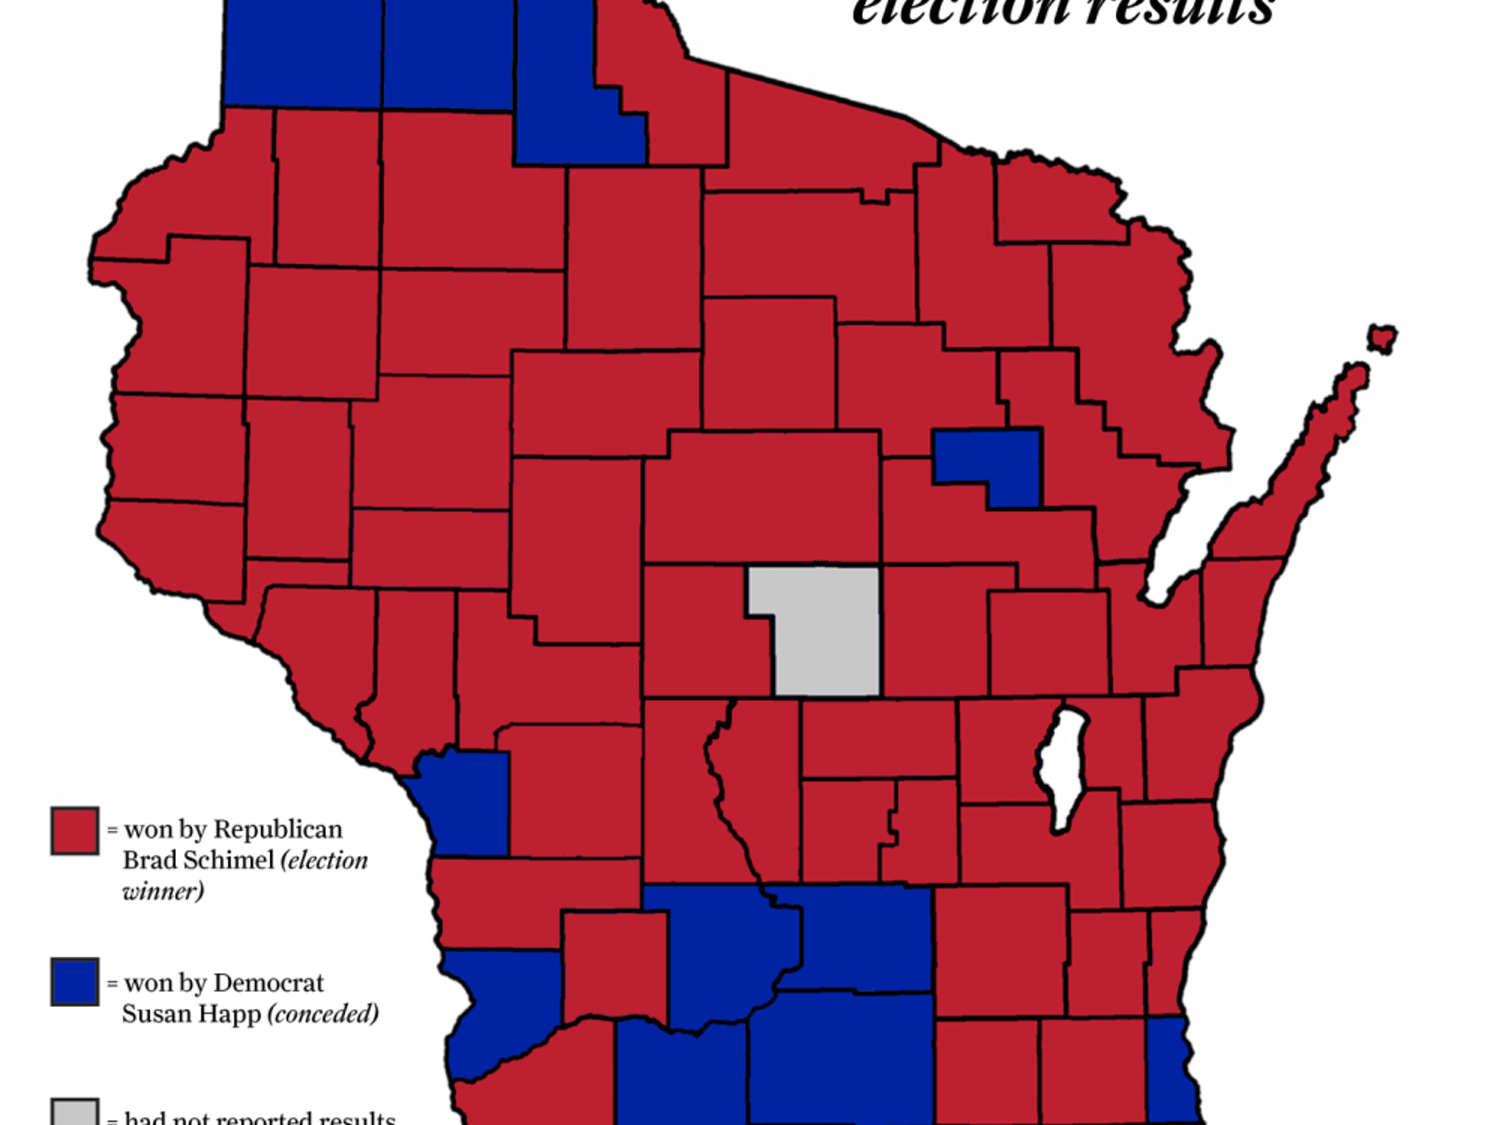 Attorney General Election results